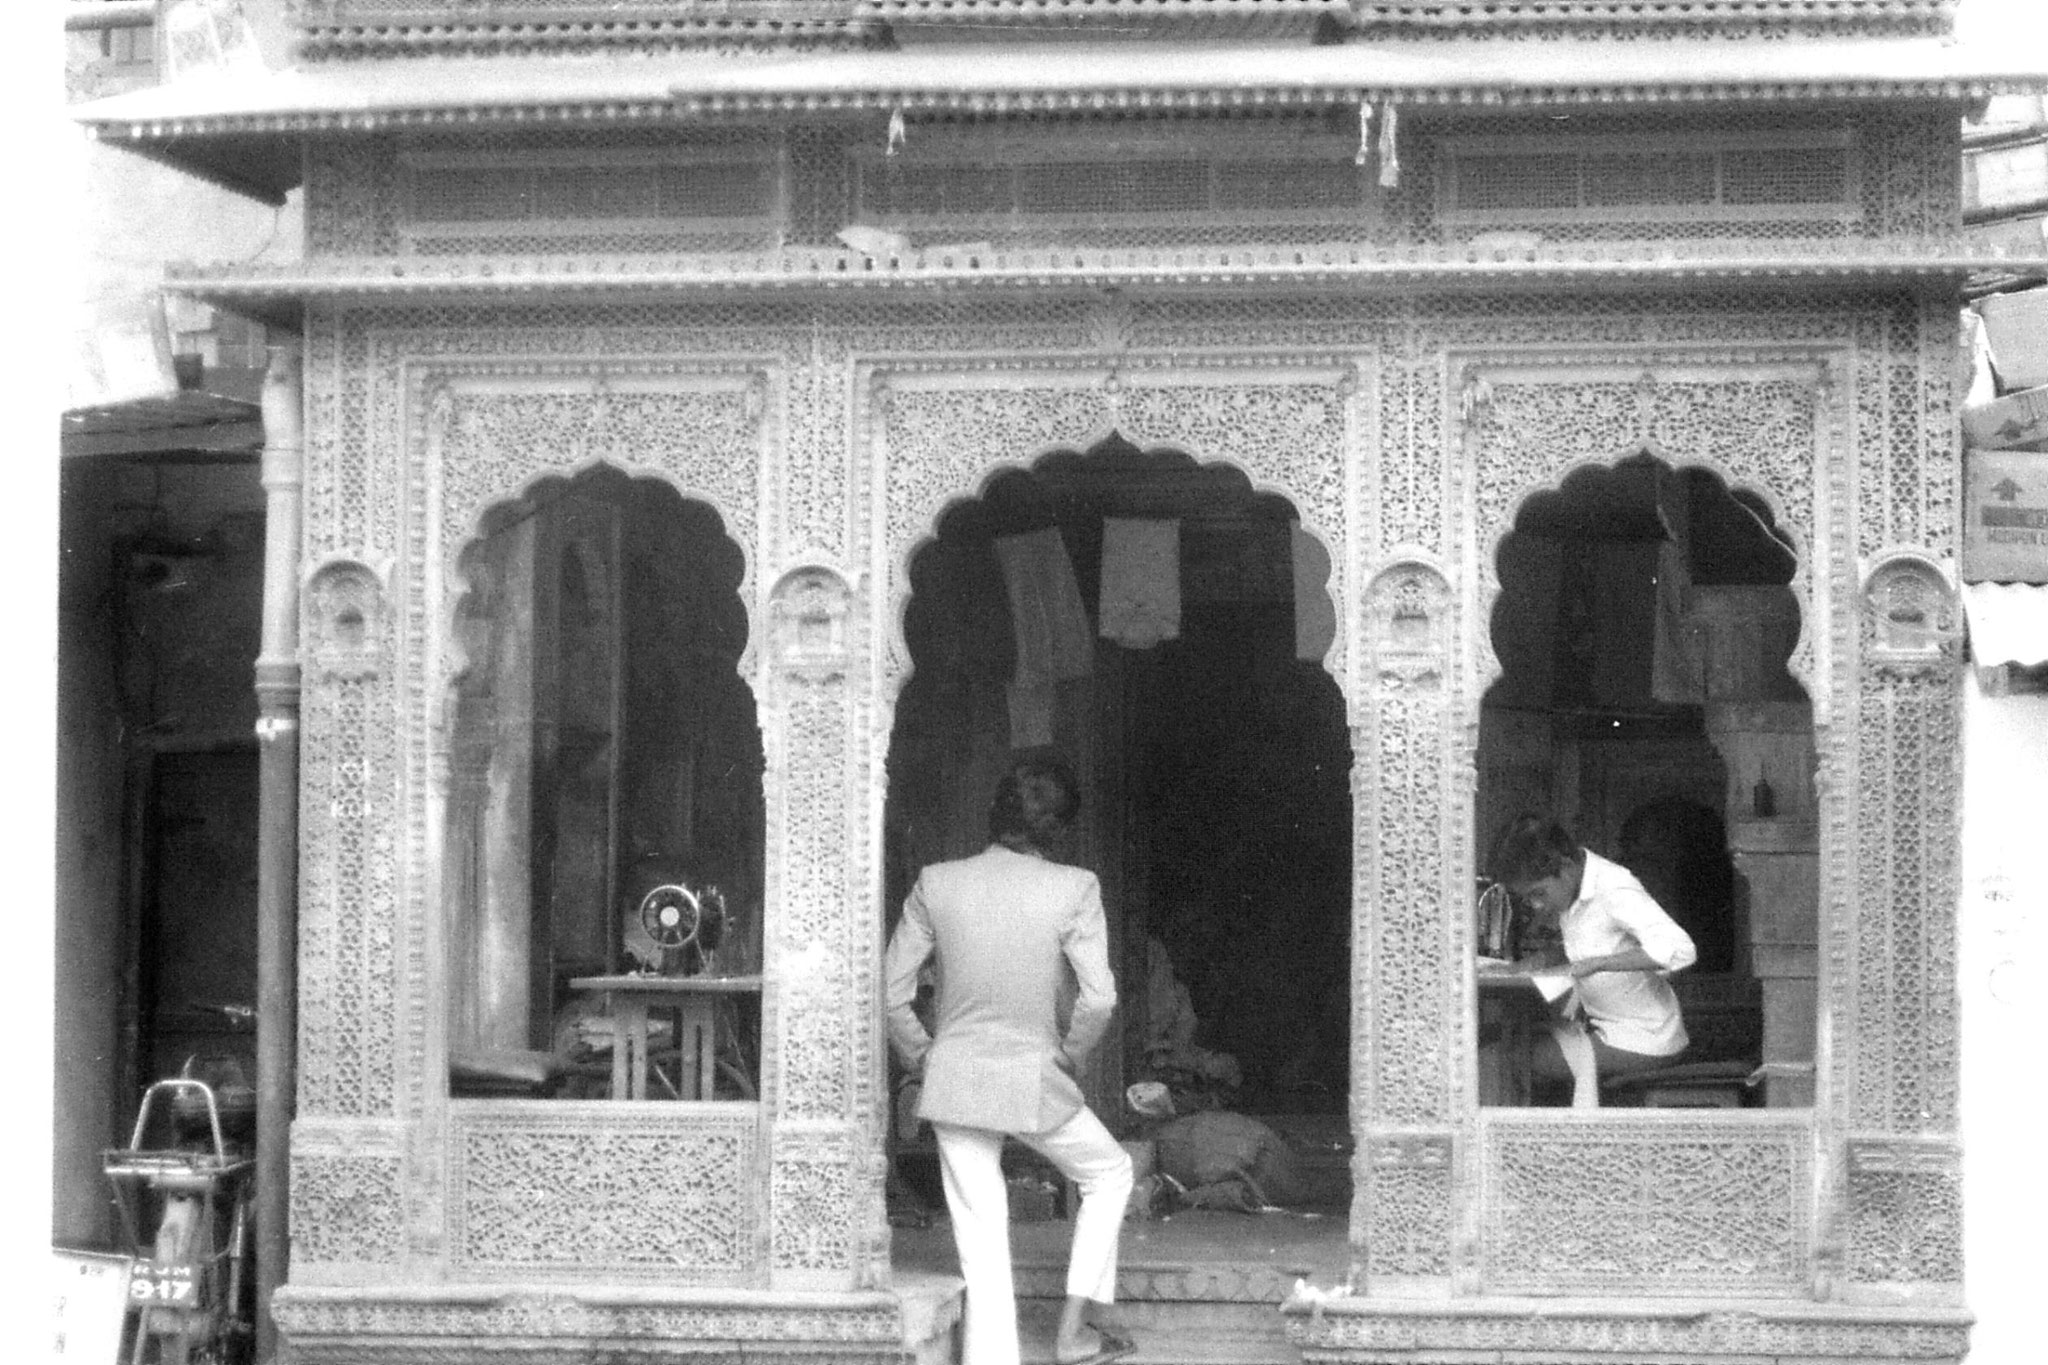 4/12/1989: 1: Jaisalmer, tailors in carved house